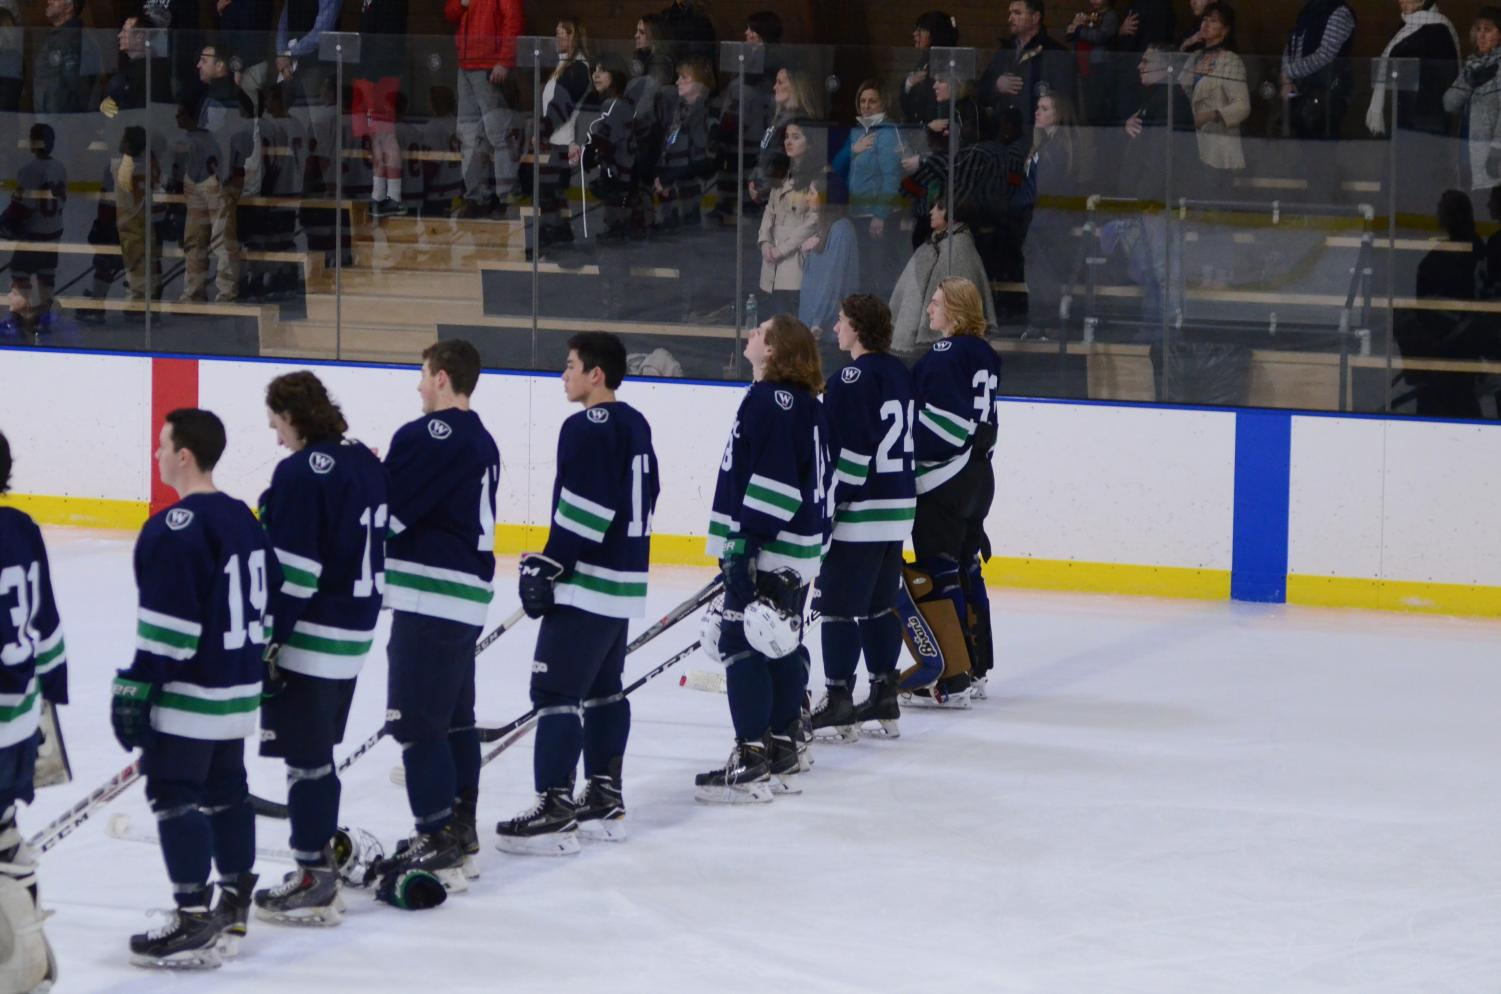 Hockey players line up during the National Anthem at Senior Night 2017 against Pomfret. Credit: Williston Flickr.